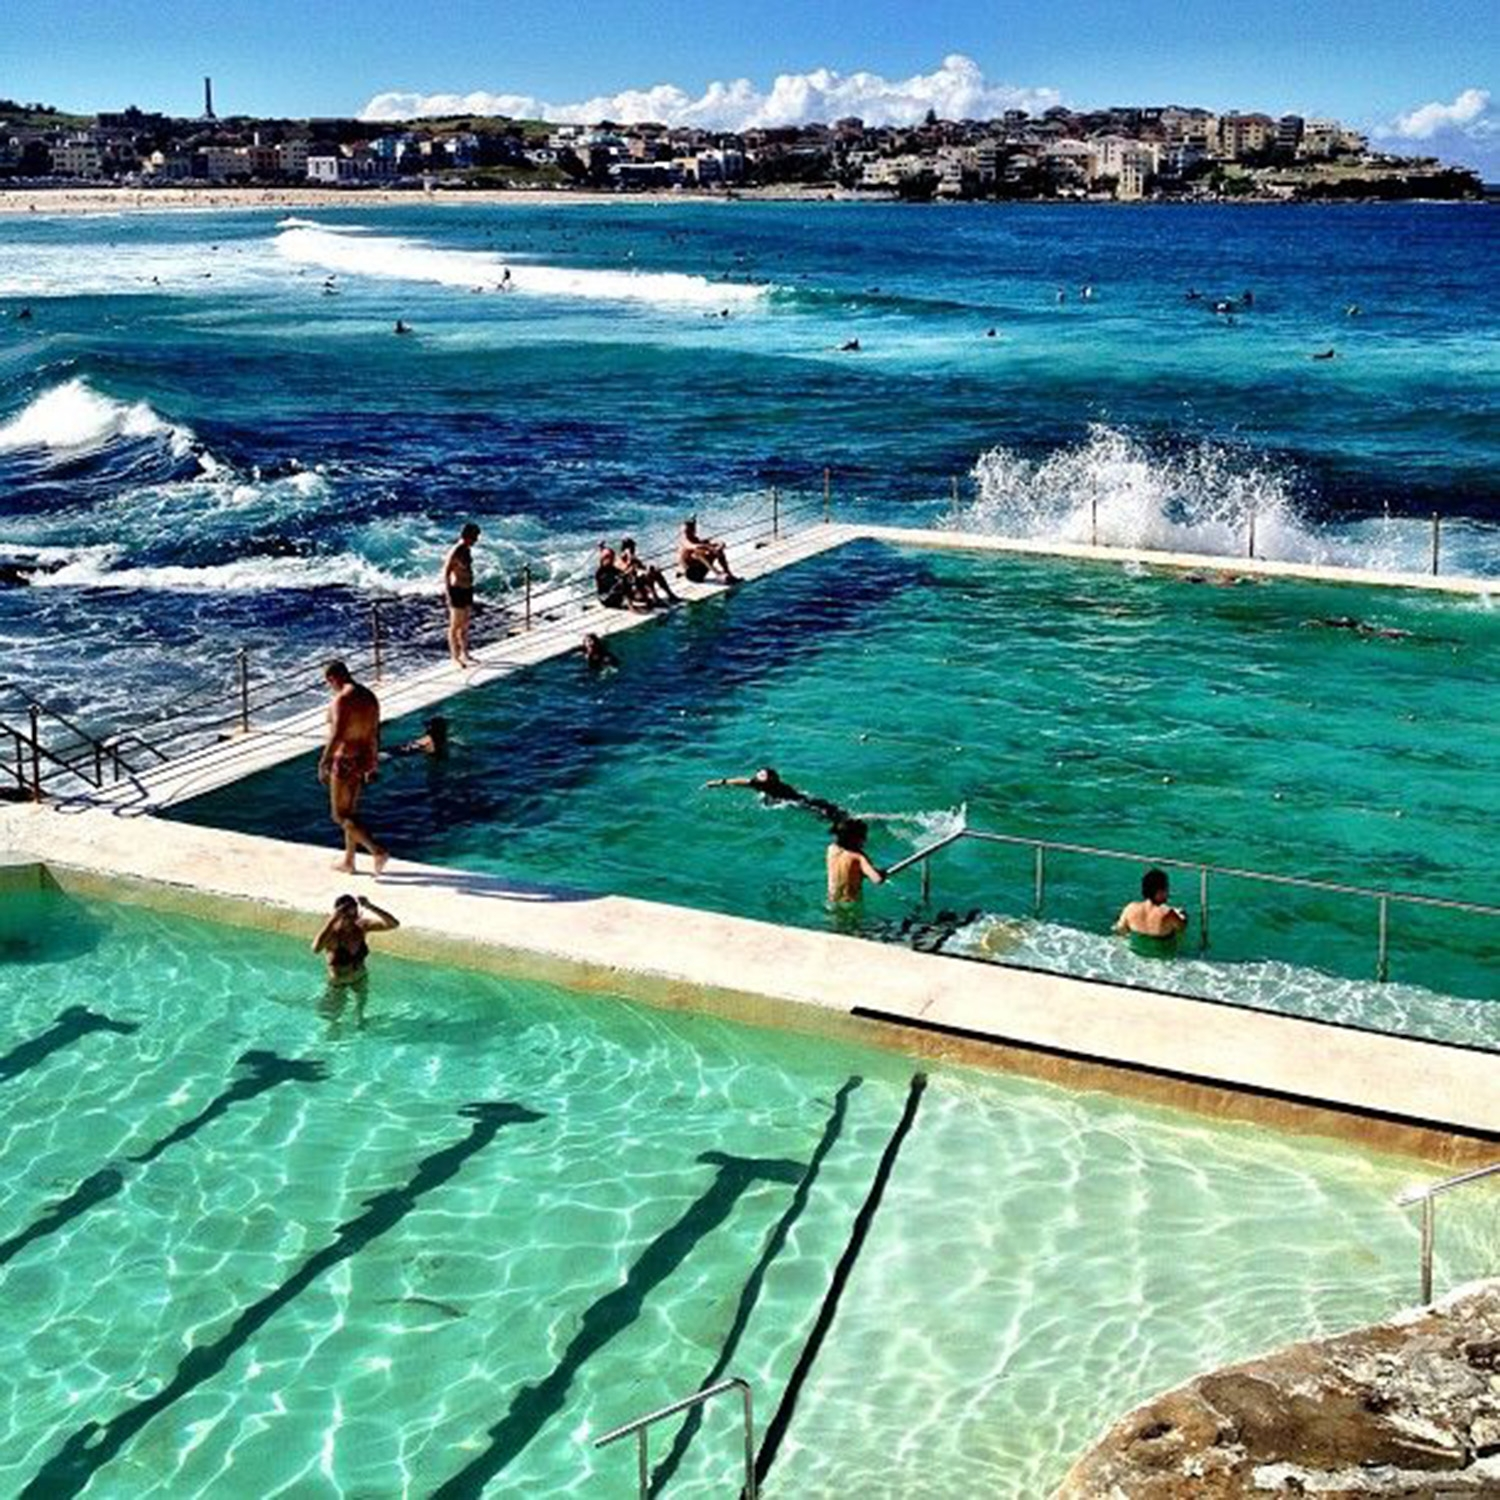 Swimmers enjoying the pool and ocean on Mother's Day at Bondi